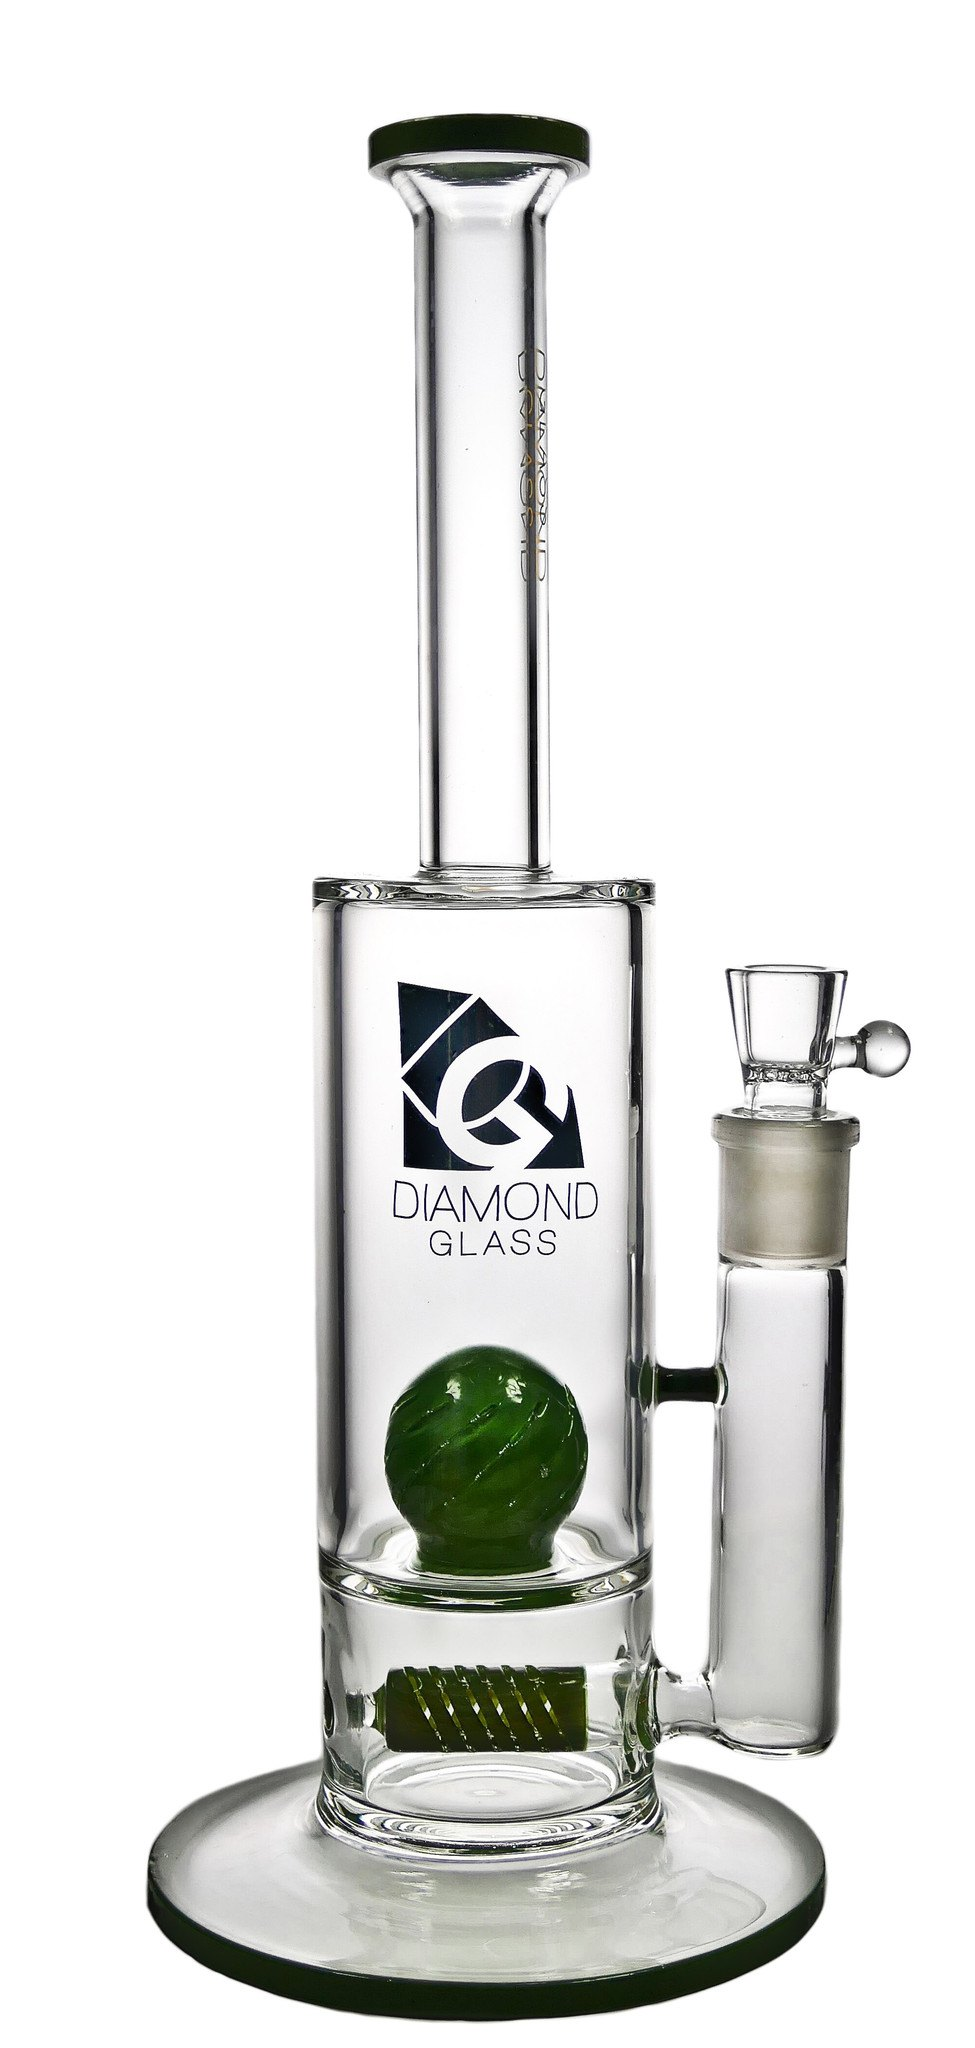 Diamond Glass - Gridded Stem Line to Gridded Ball Water Pipe 14''